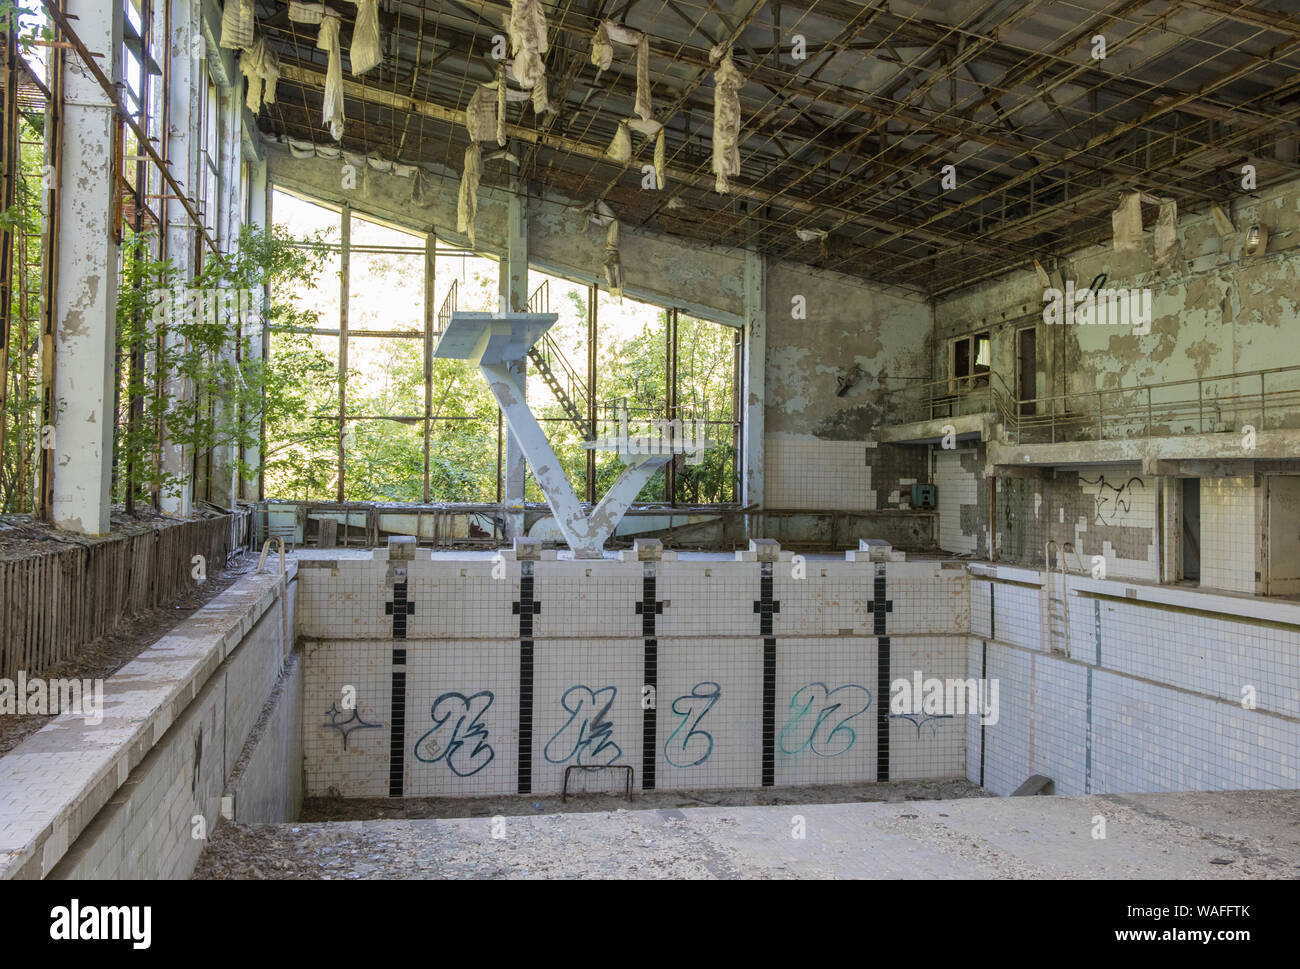 Reactor Pool High Resolution Stock Photography And Images Alamy